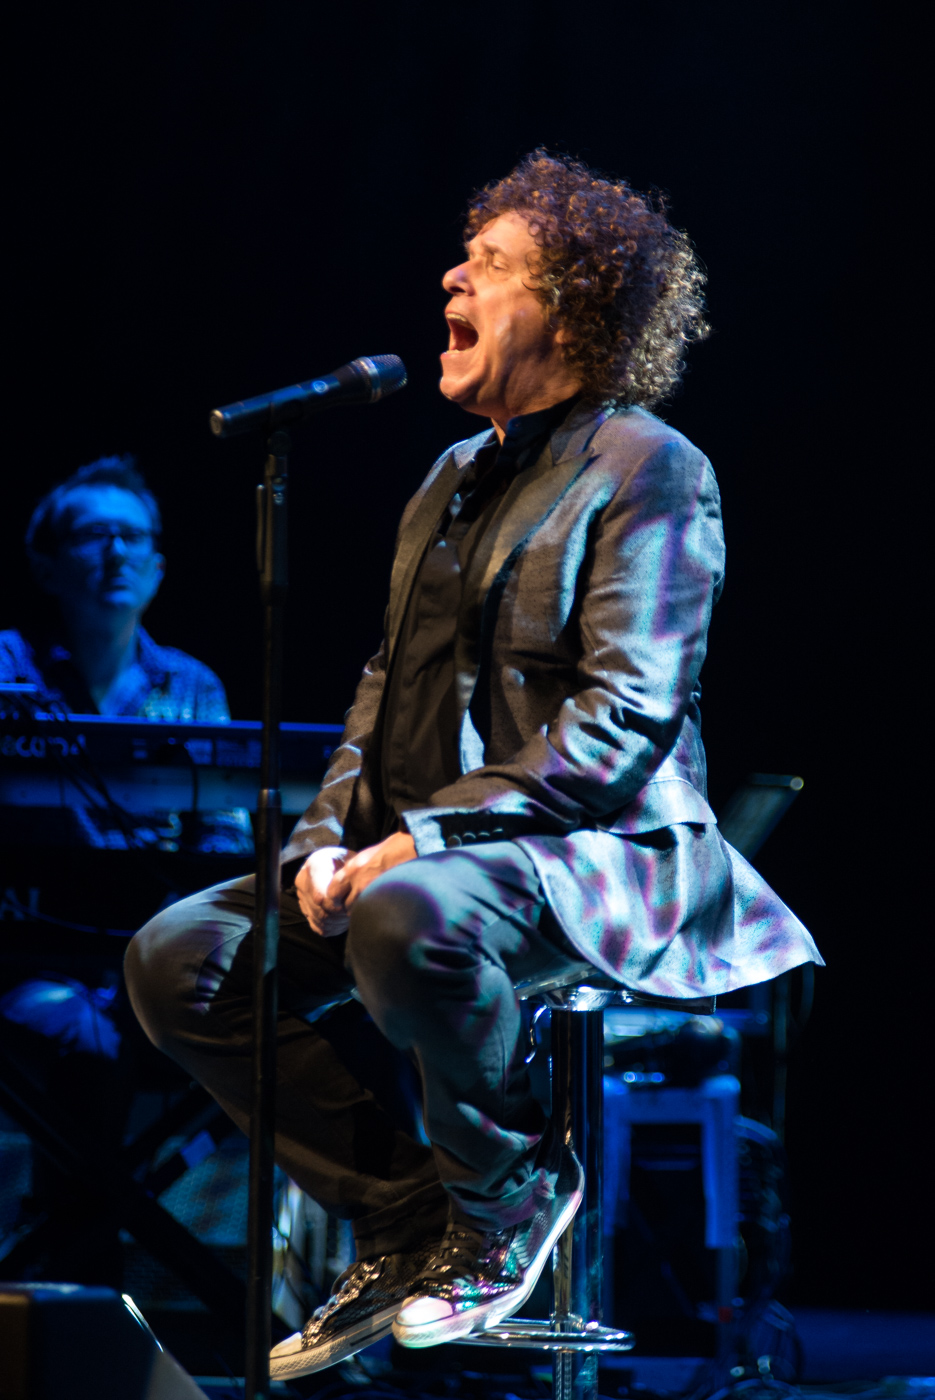 Leo Sayer at Bord Gais Energy Theatre by Sean Smyth (16-10-15) (80 of 129)